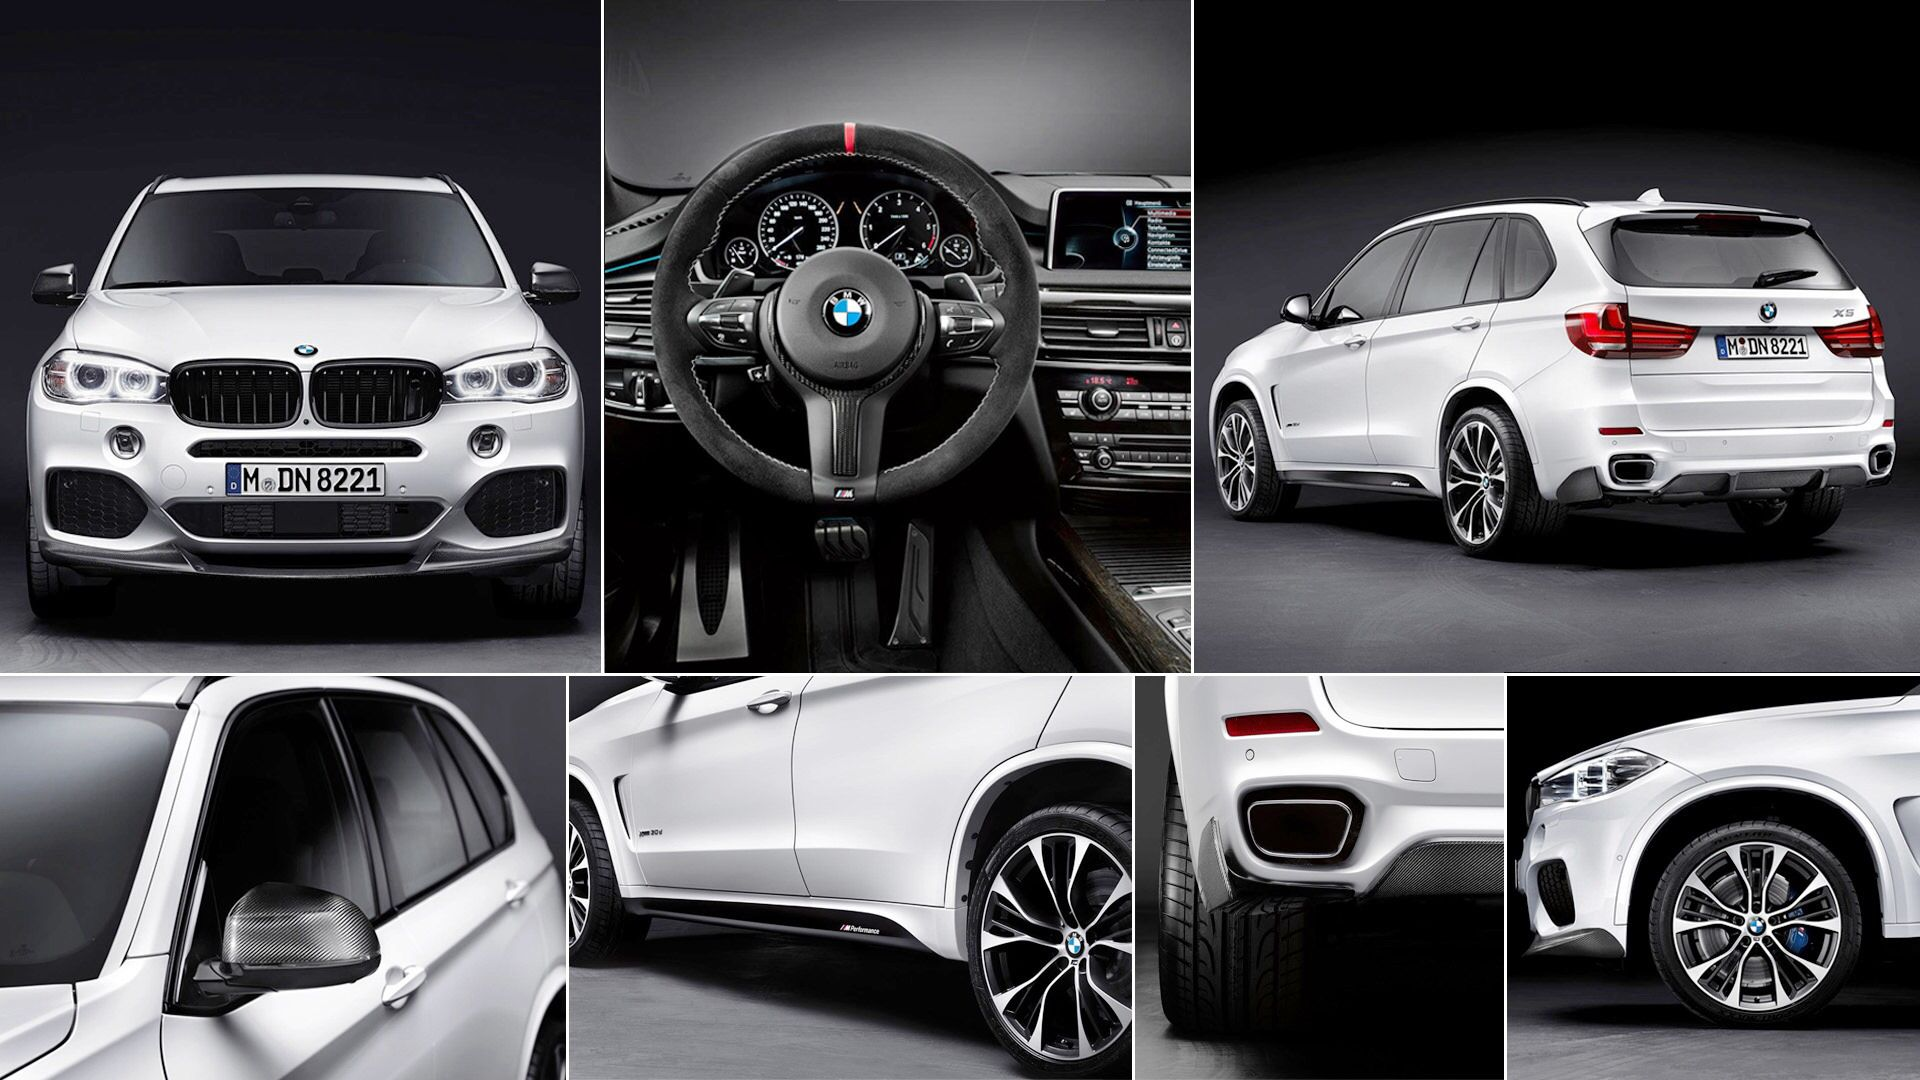 Test drove this beast yesterday, BMW X5 2014 m sport. This